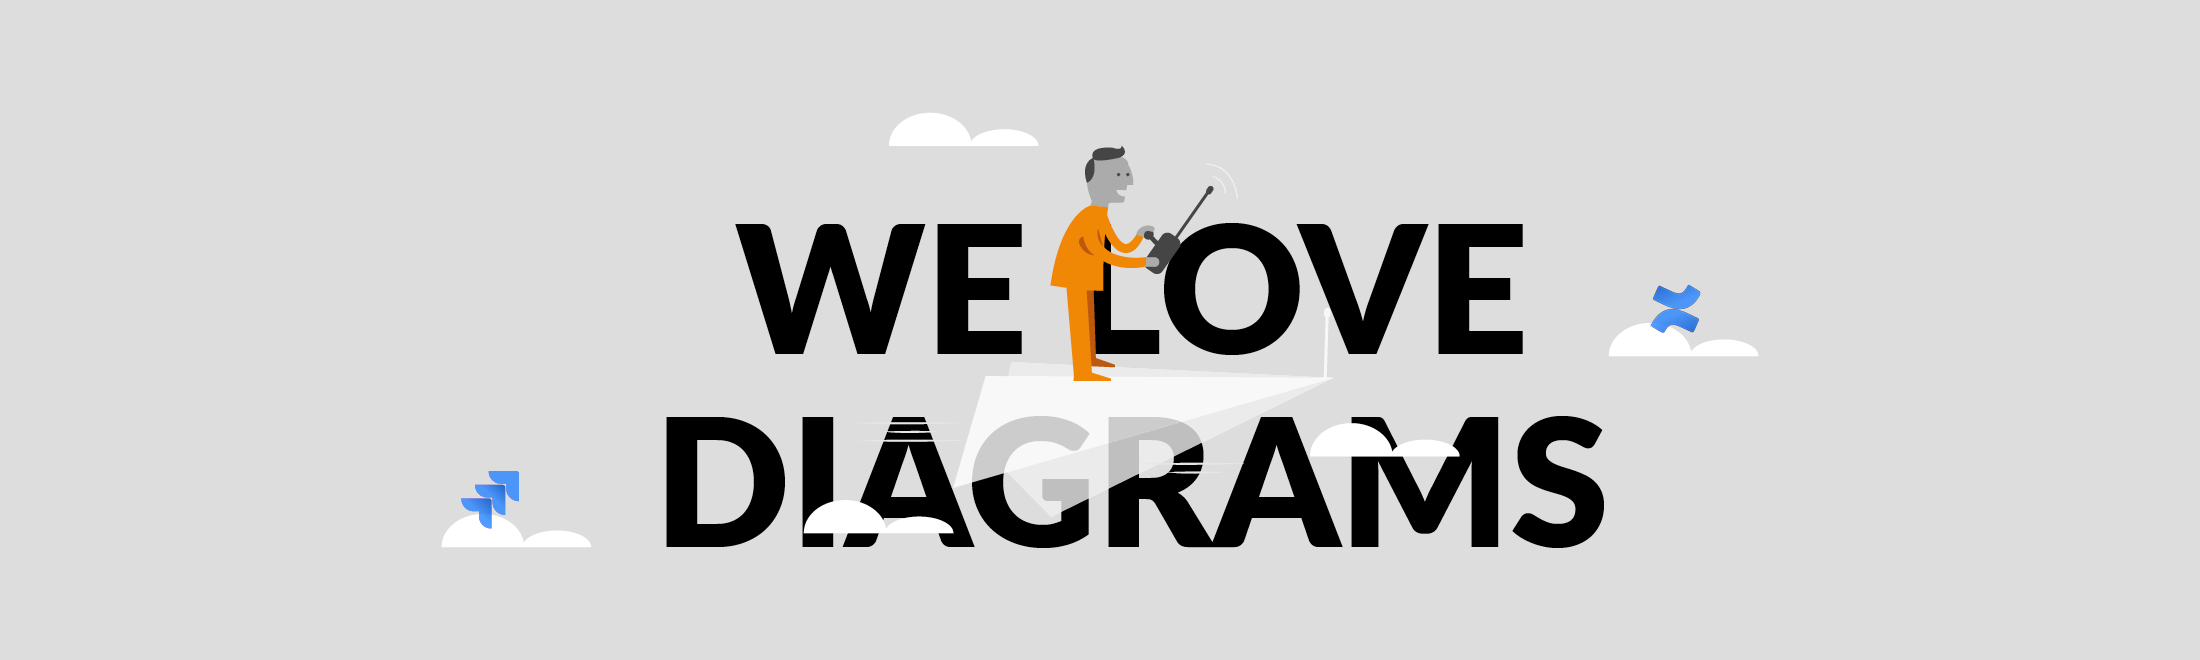 We've just given the draw.io website a new look and a new domain name: drawio-app.com.